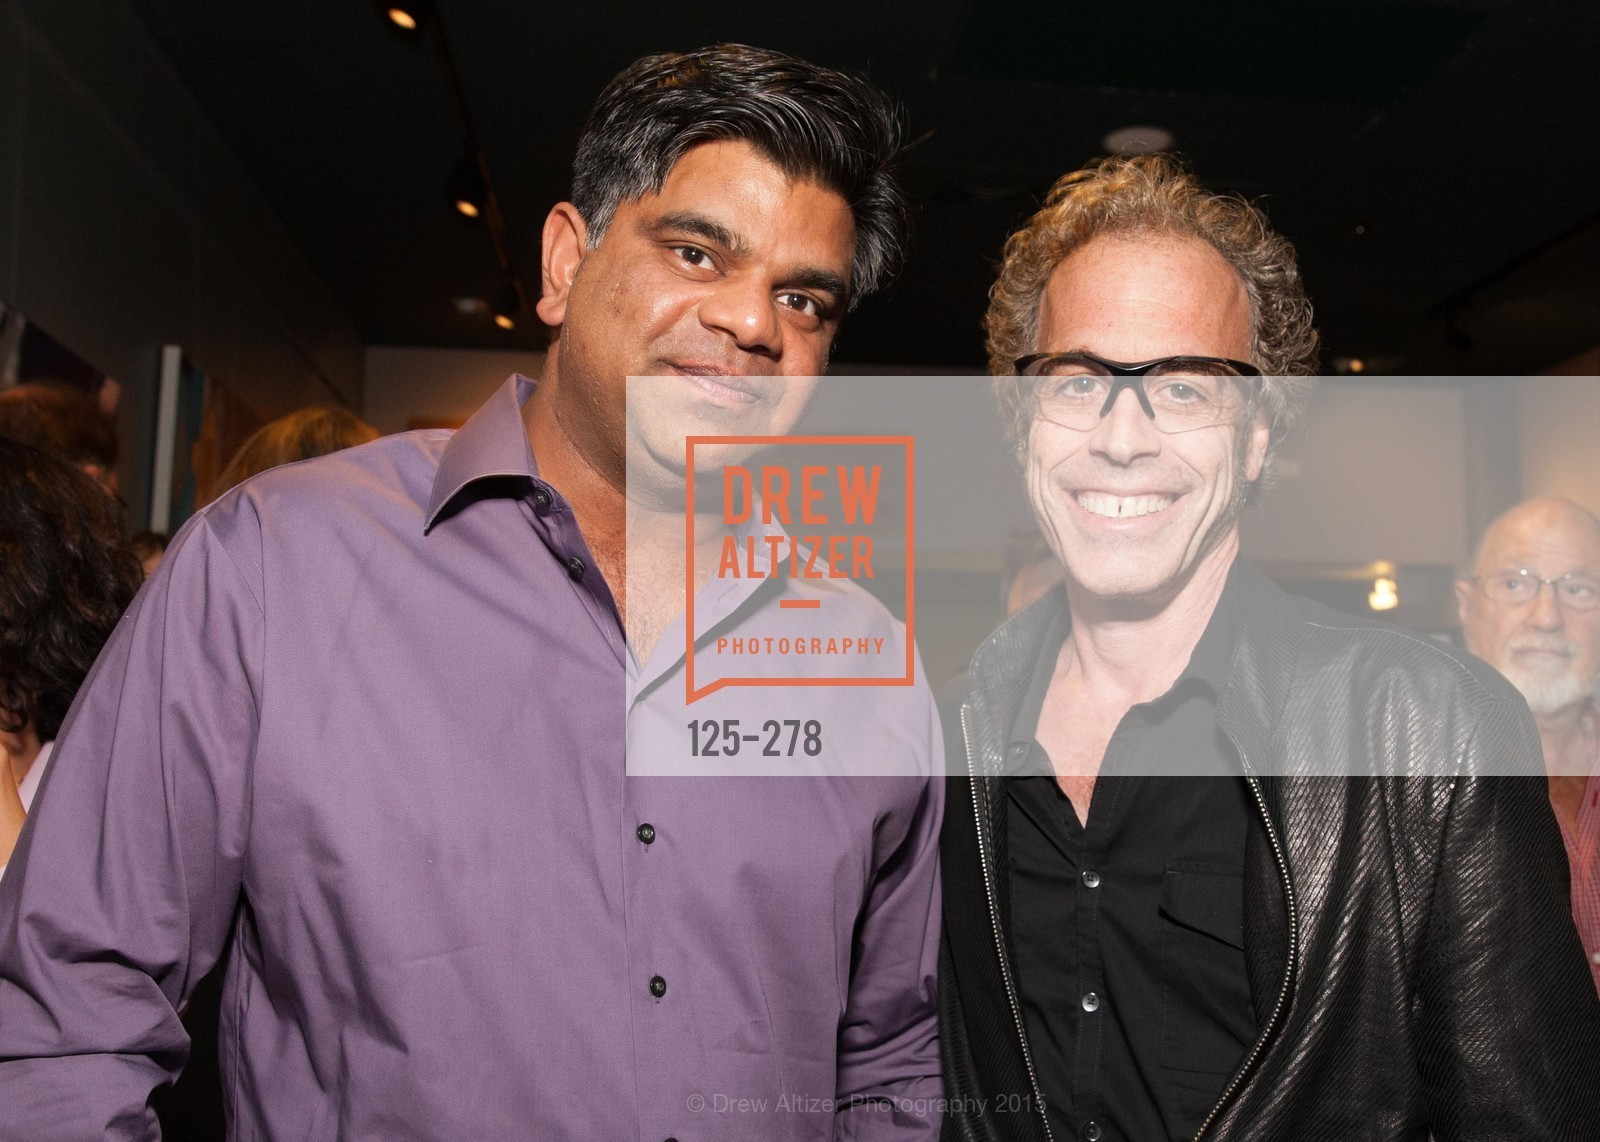 Ankur Sahu, Greg Stephens, San Francisco 2.0 Premiere, Sundance Kabuki Cinema, September 3rd, 2015,Drew Altizer, Drew Altizer Photography, full-service agency, private events, San Francisco photographer, photographer california